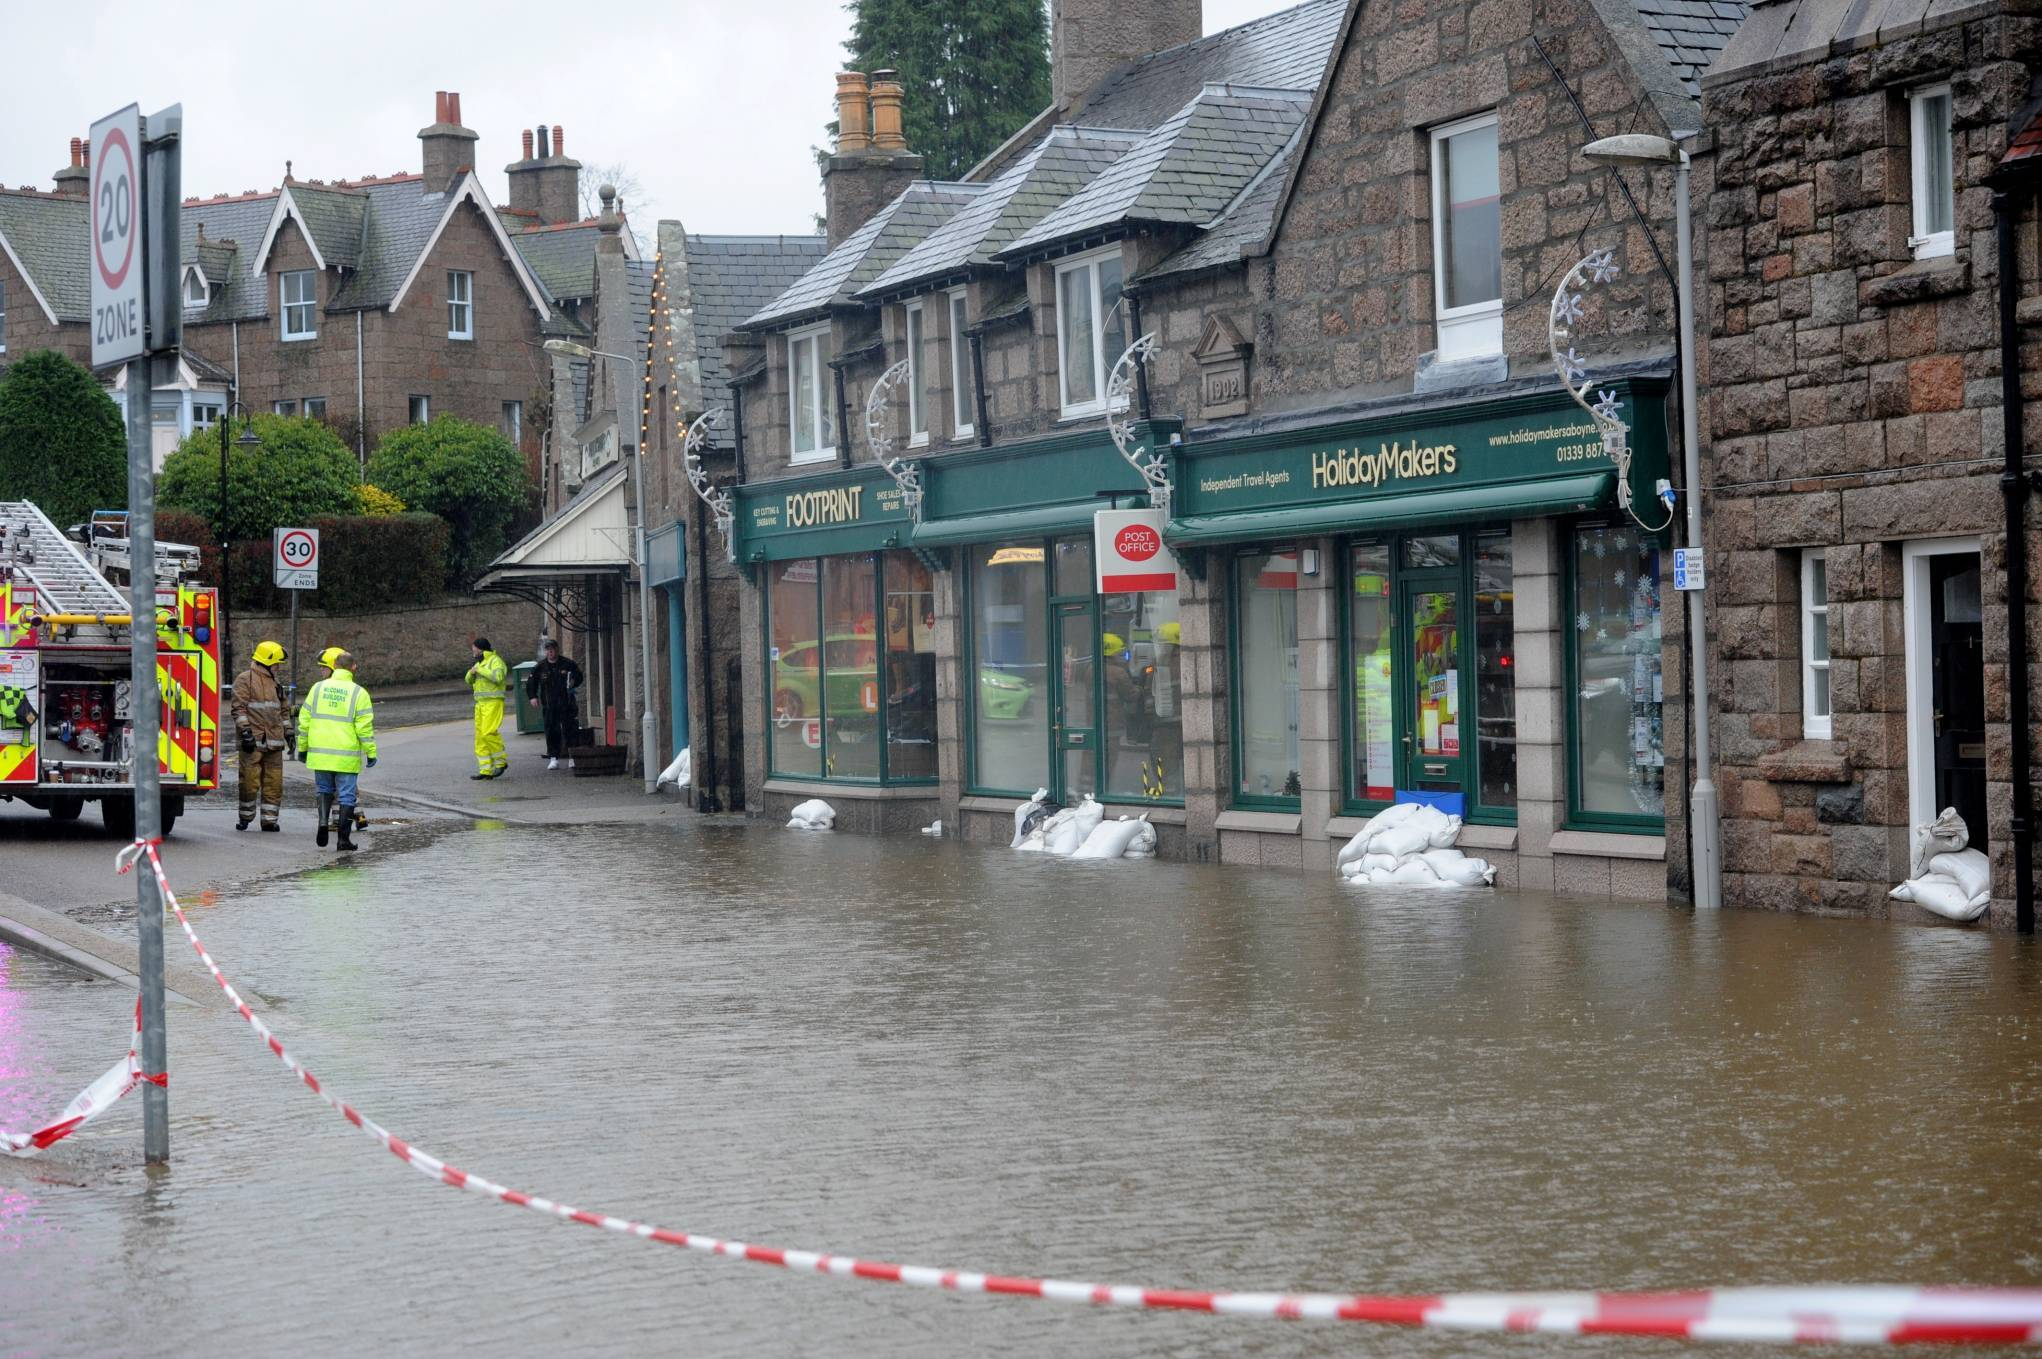 Flooding in Aboyne, near the Square.